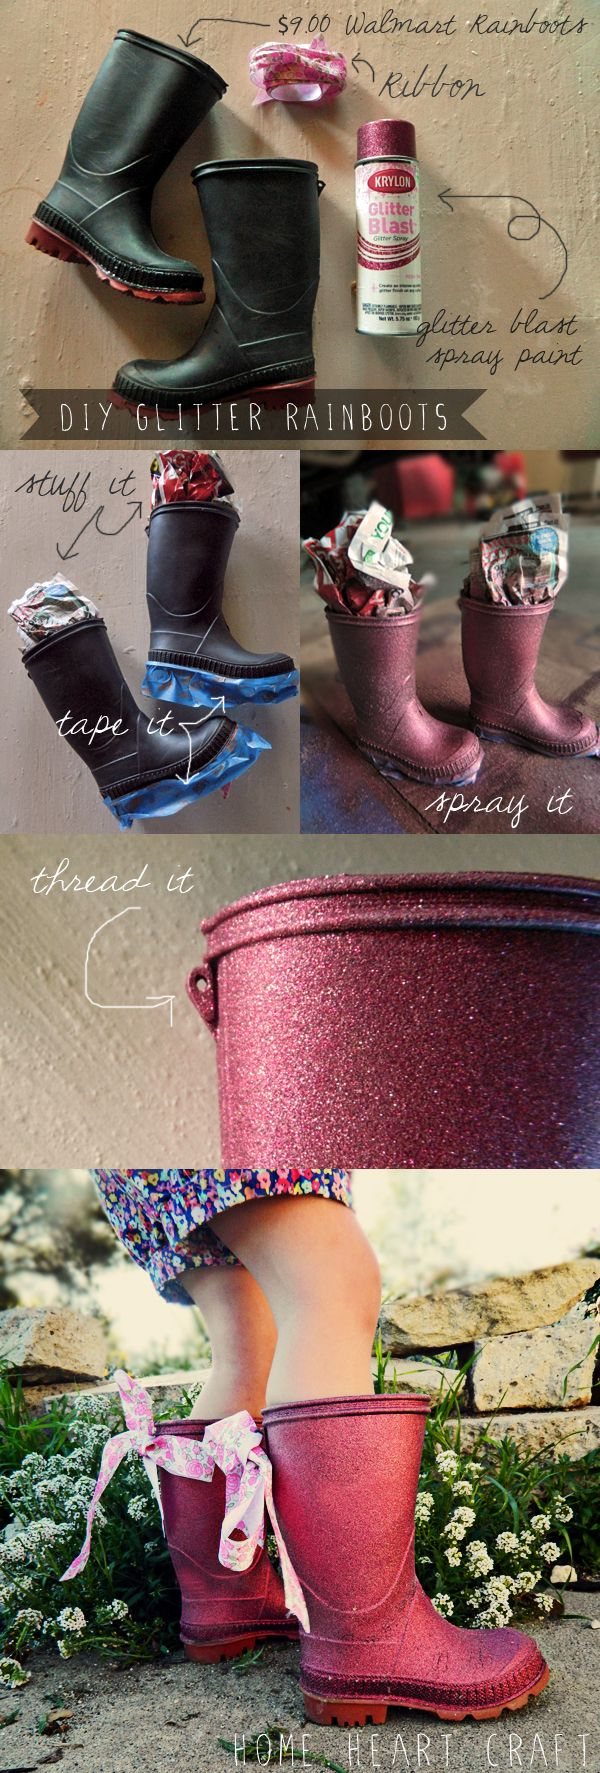 DIY Glitter Rain boots, so cute.. (end by giving the boots a coat of clear enamel spray paint after the glitter has dried)